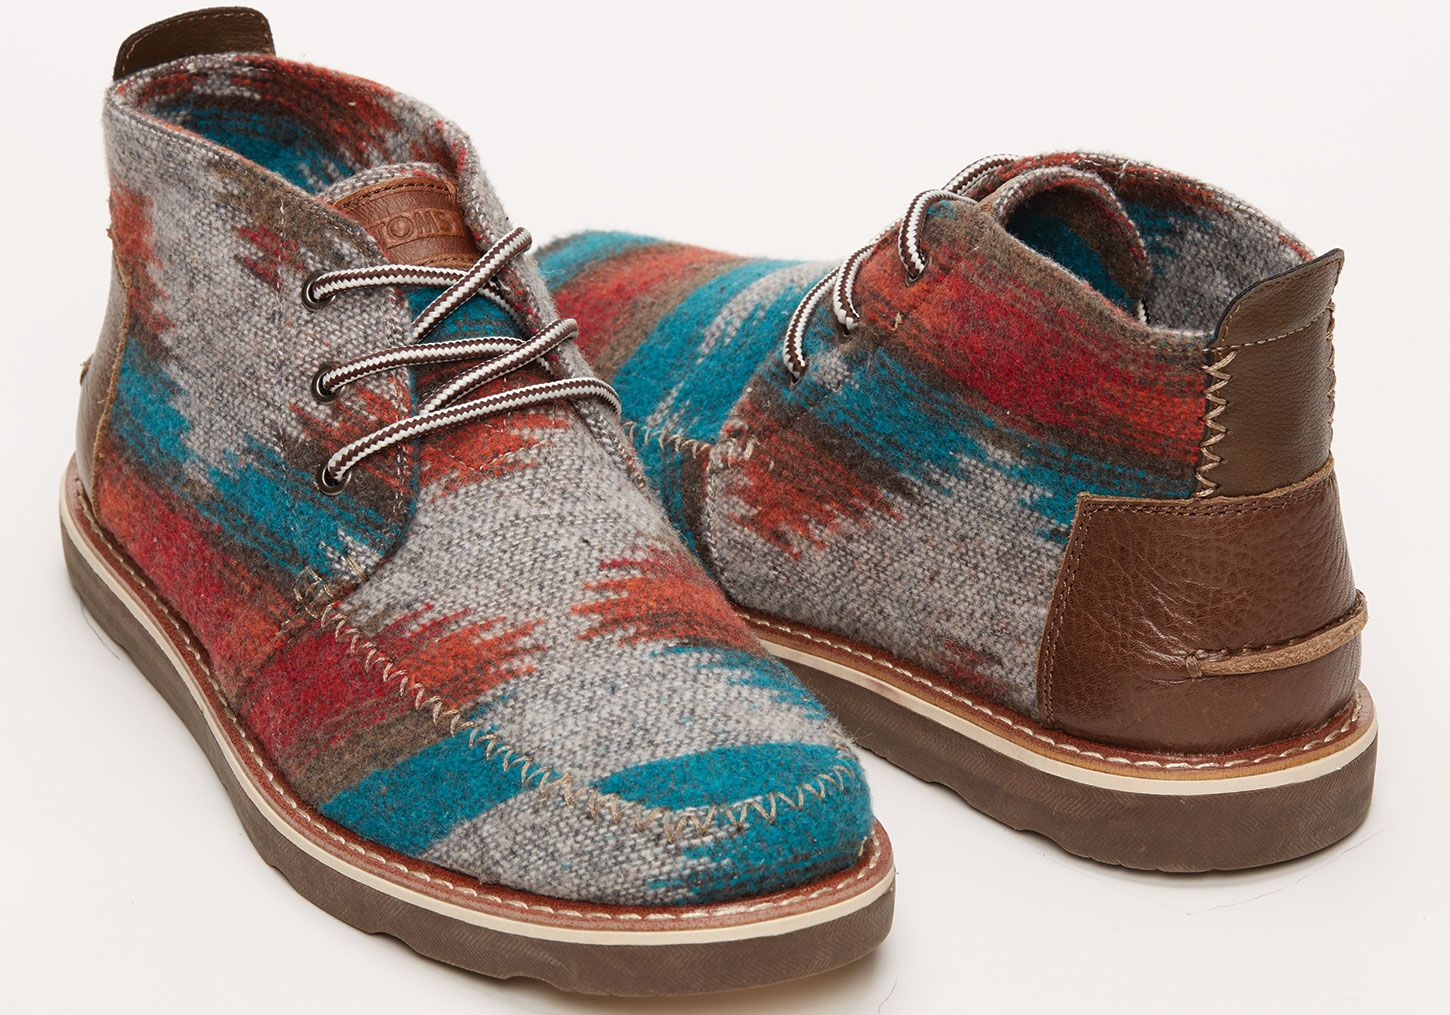 Chocolate Brown Wool Men's Chukka Boots | TOMS    for tim